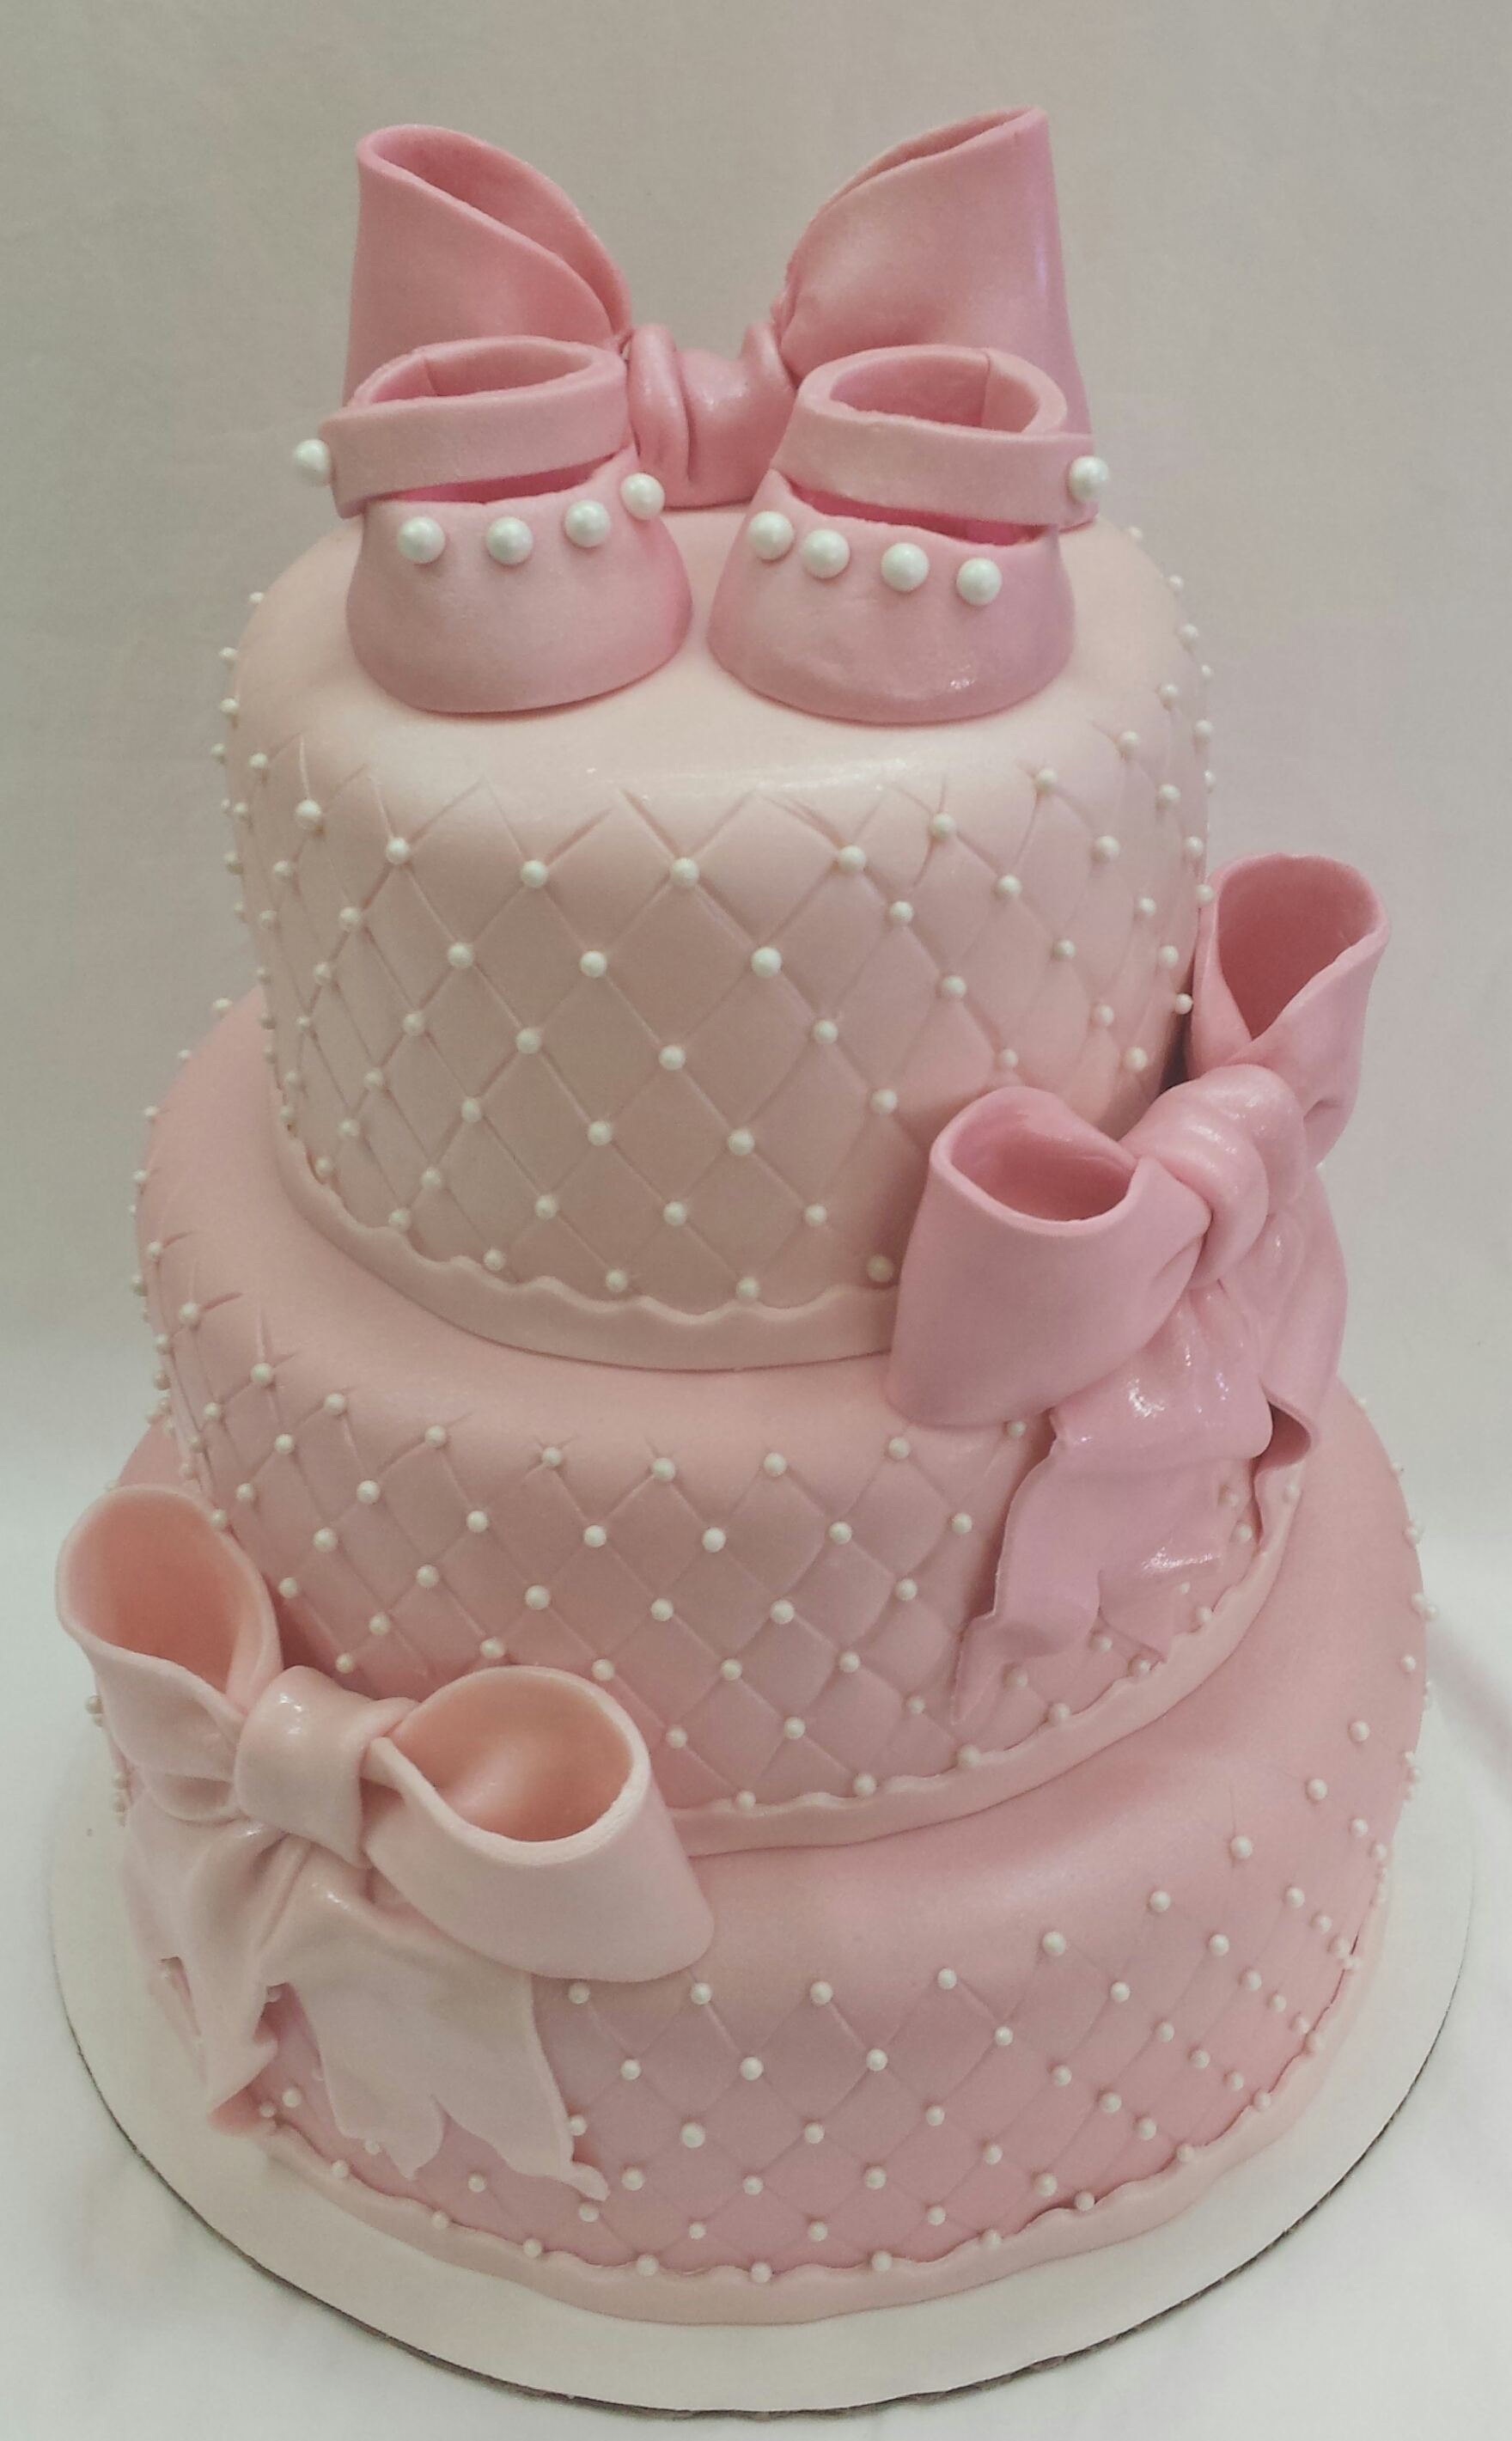 Pearls & Bows Baby Shower Cake